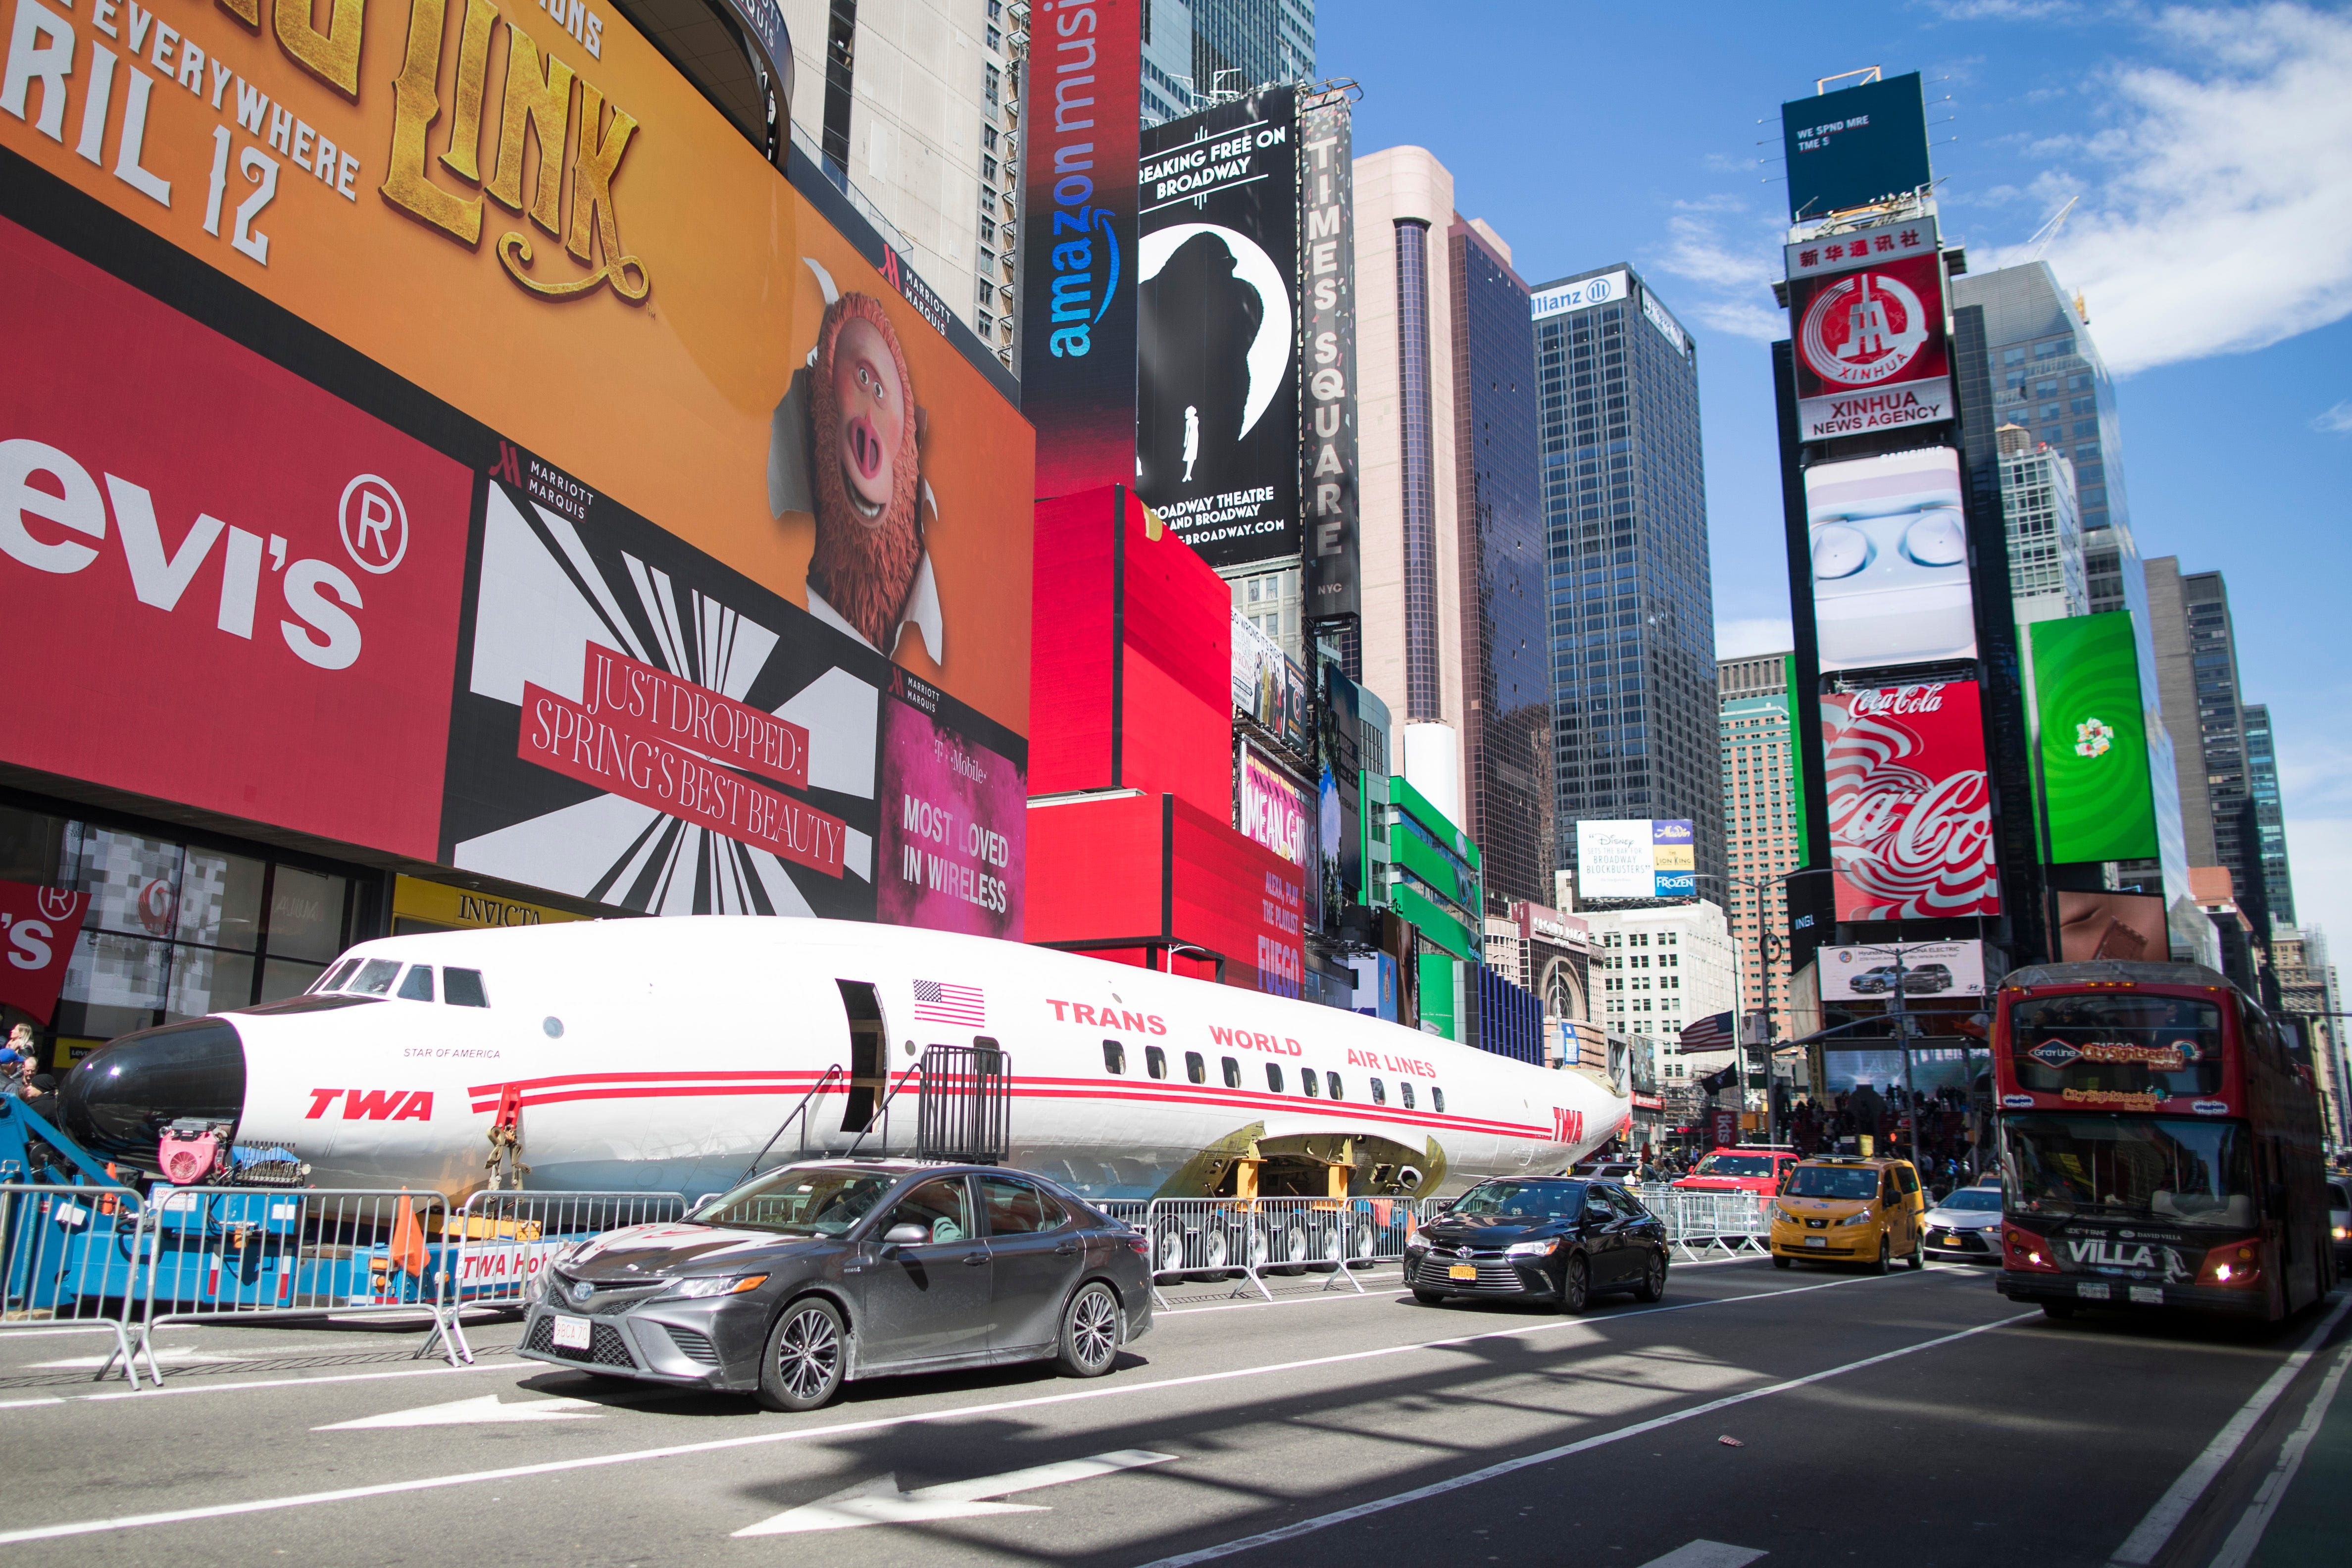 Vintage plane tours Times Square before becoming a cocktail lounge